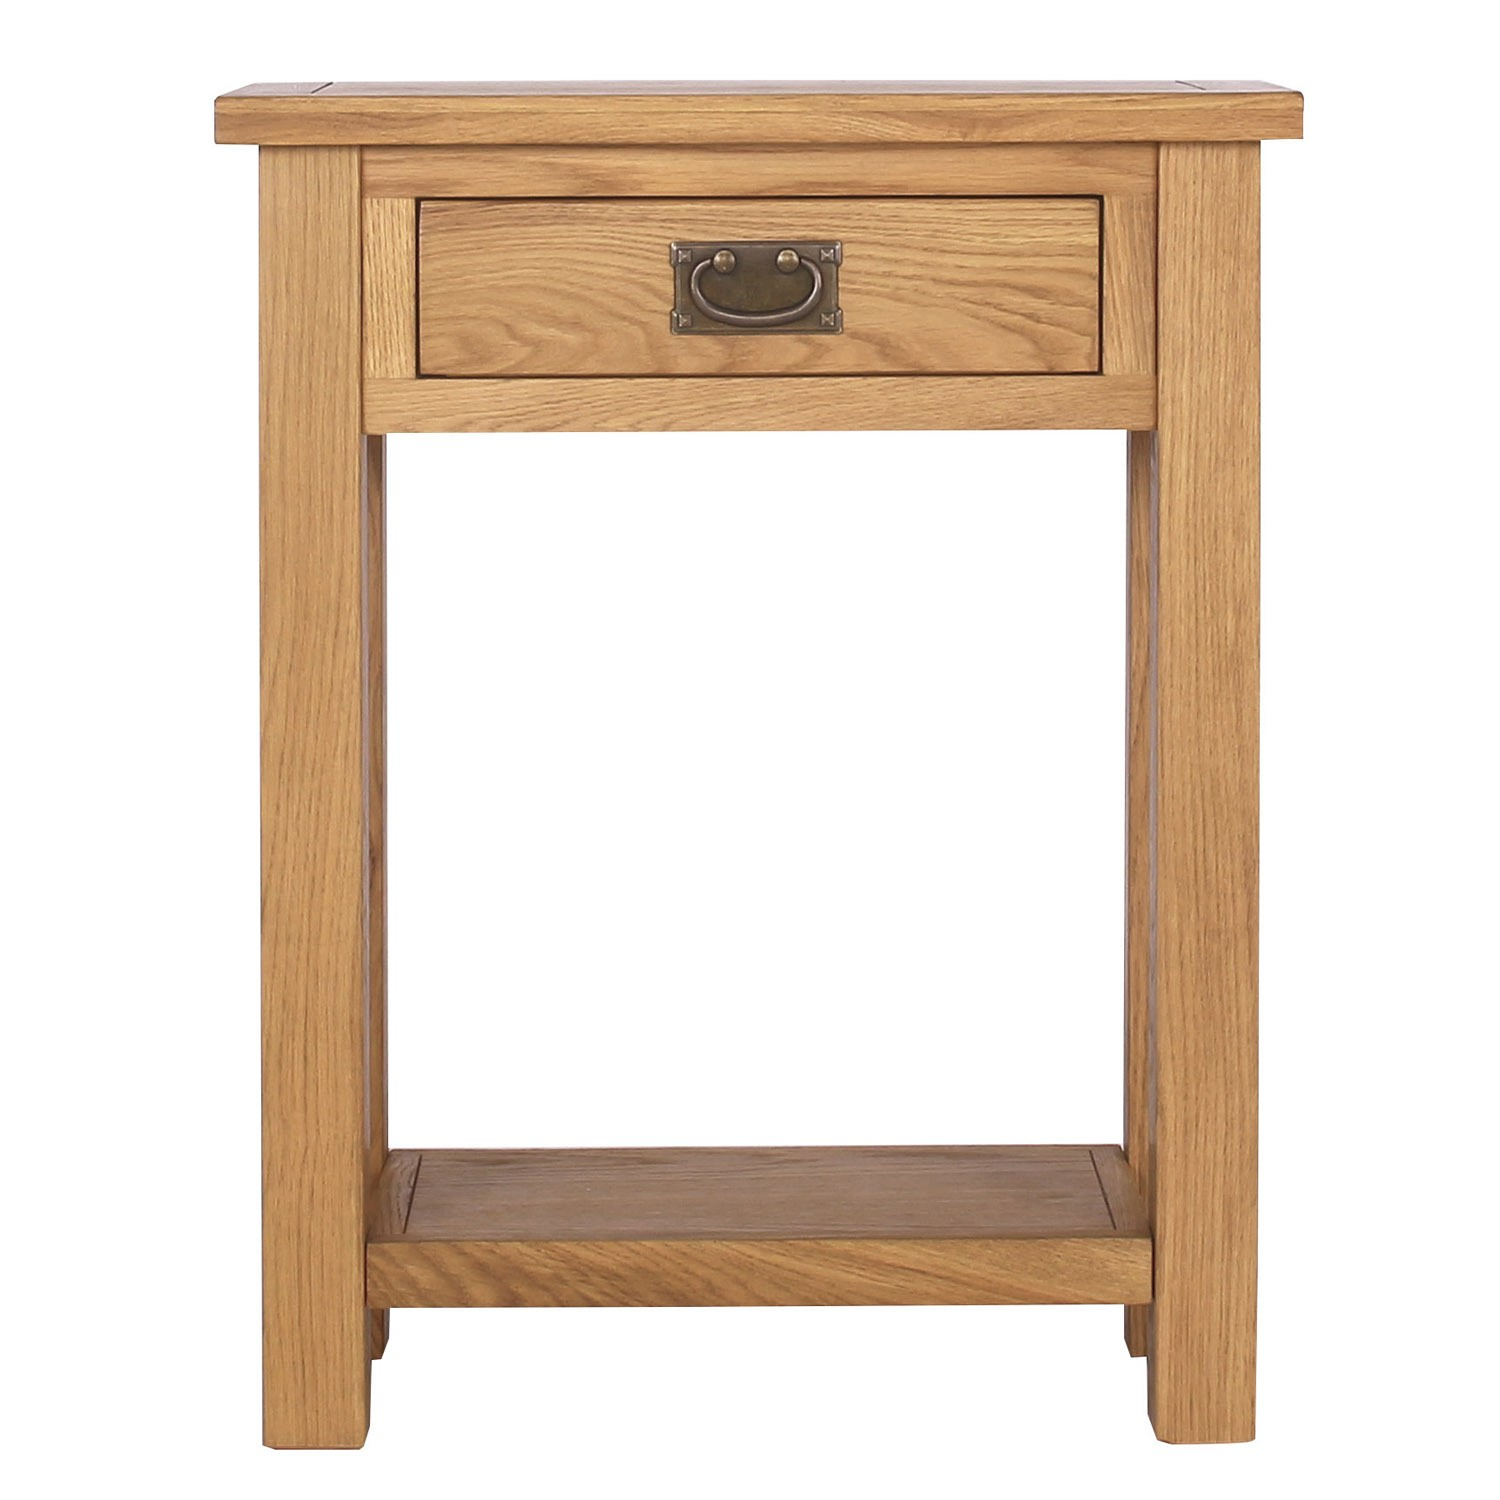 Narrow Console Table Australia Solid Oak Narrow Console Table 43 1 Drawer 43 Lower Shelf